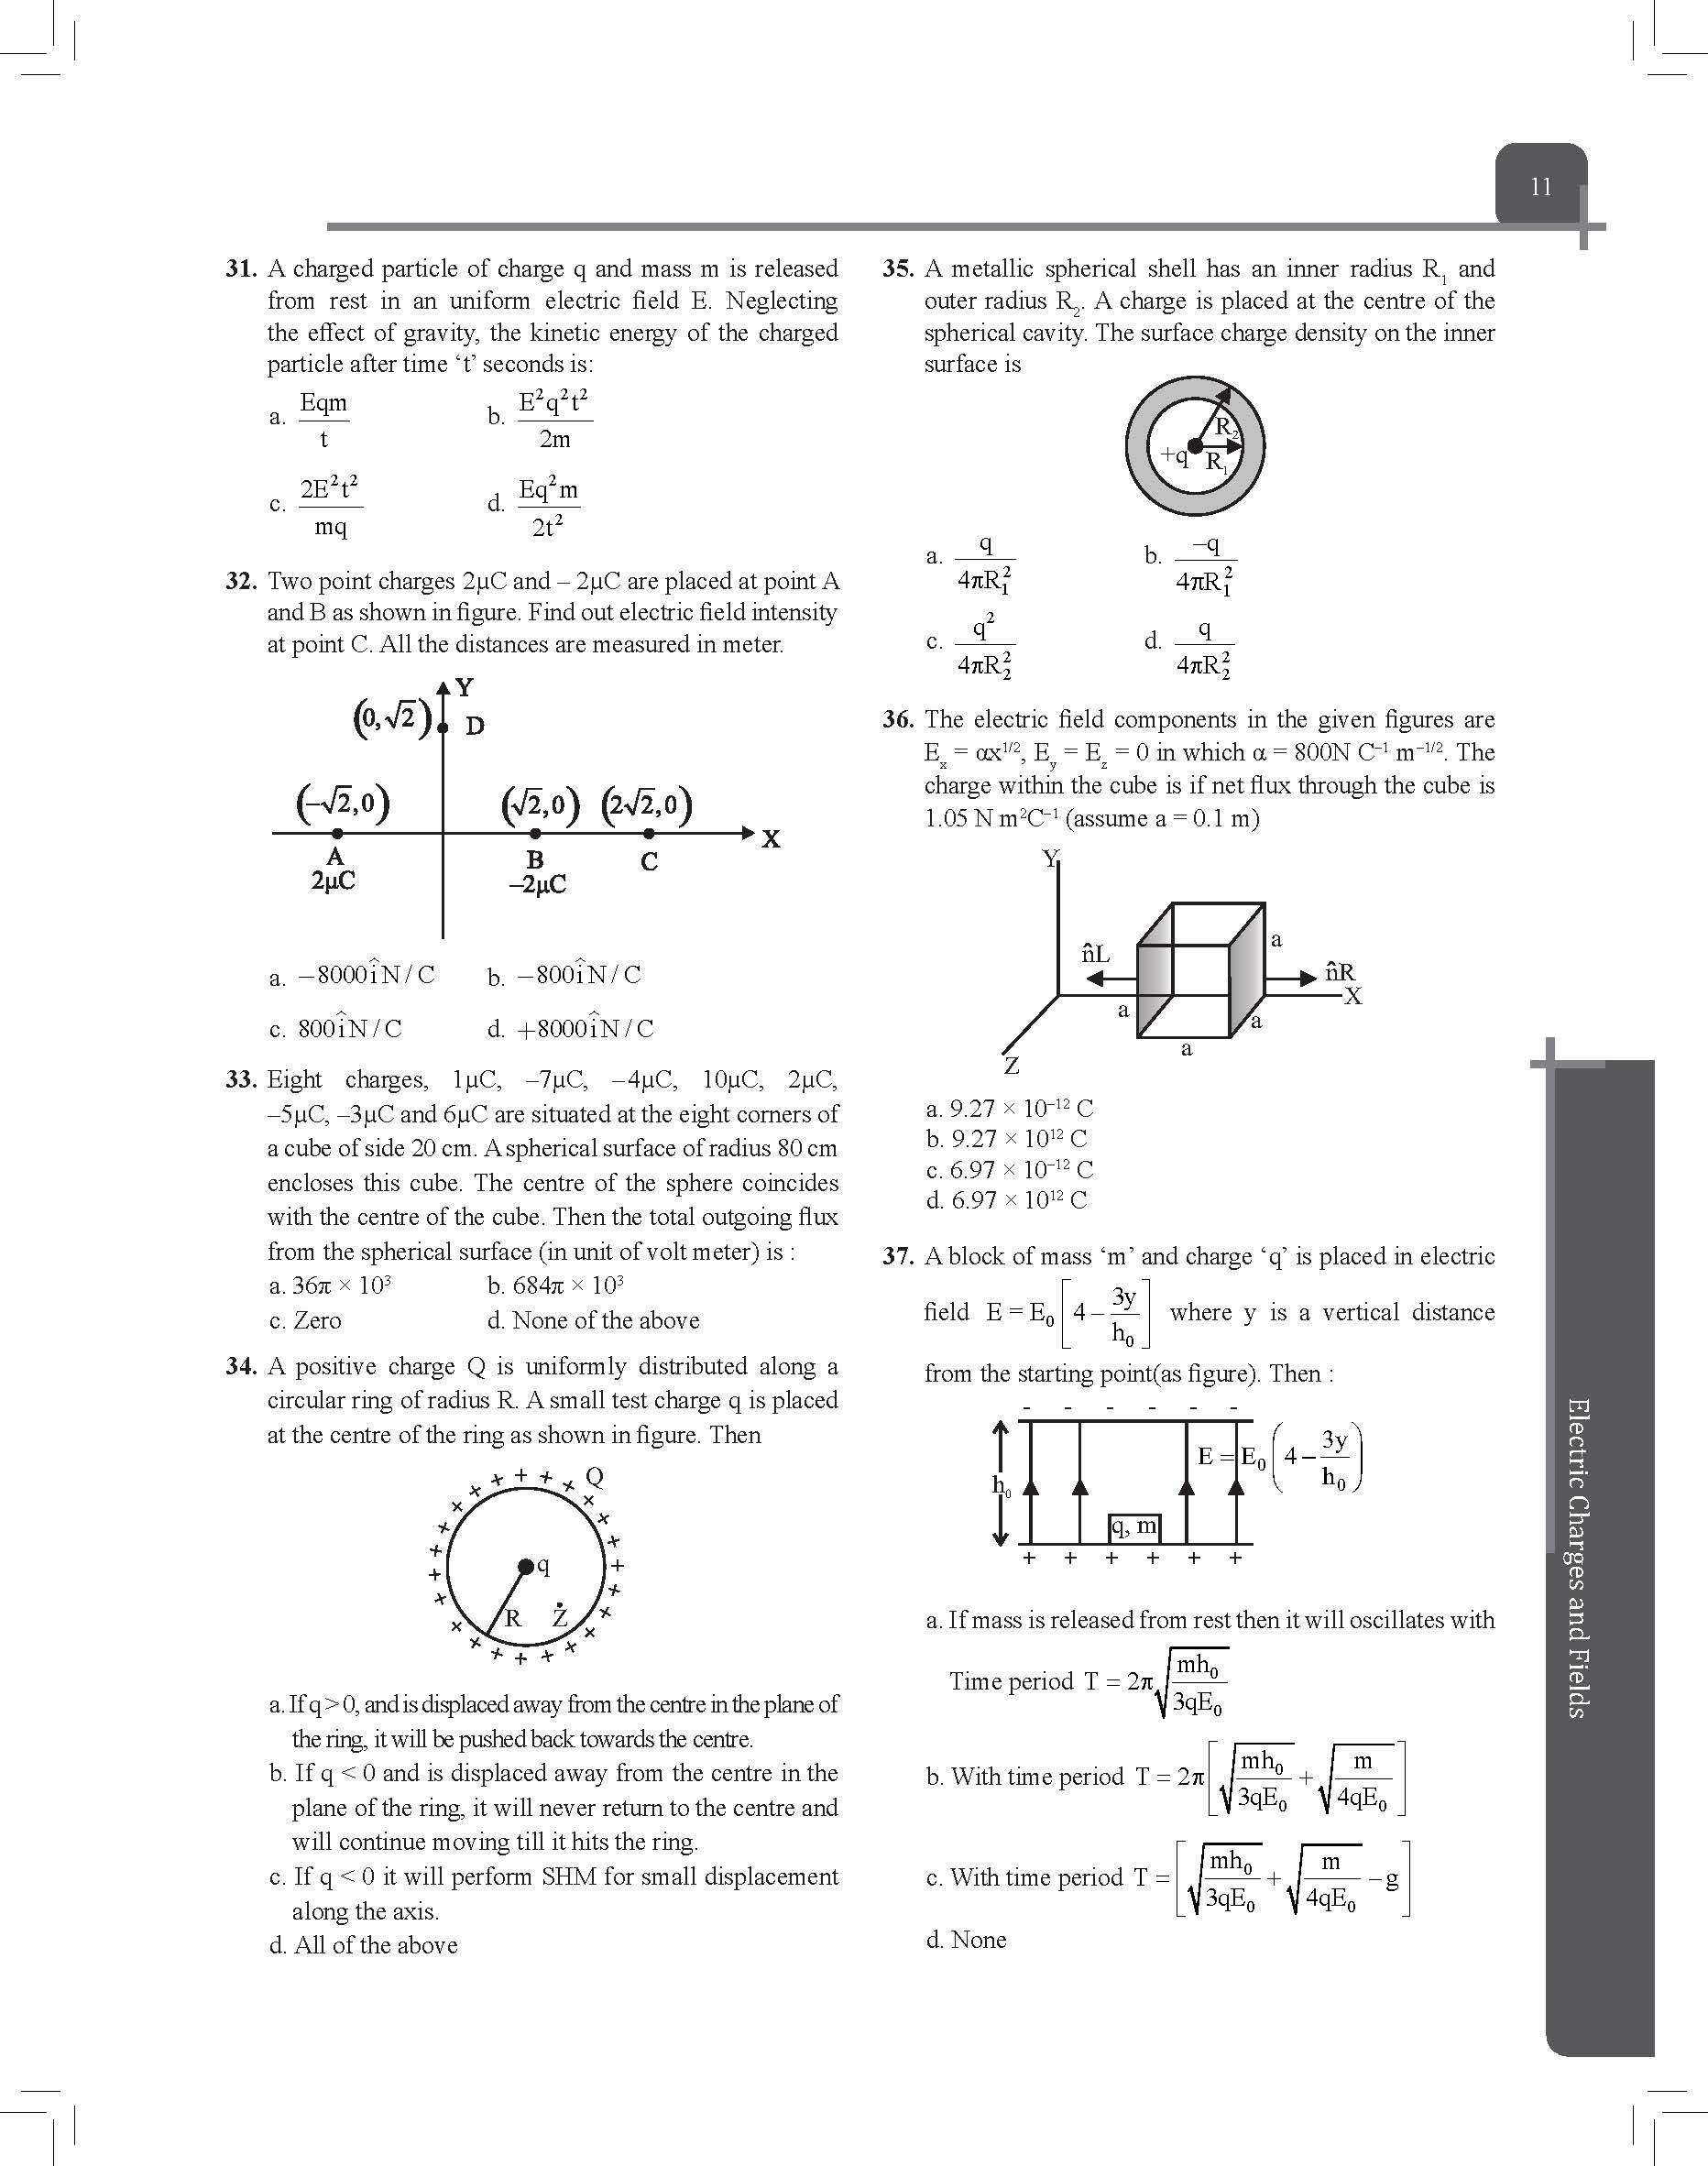 Objective Gear Up Physics Sample 1